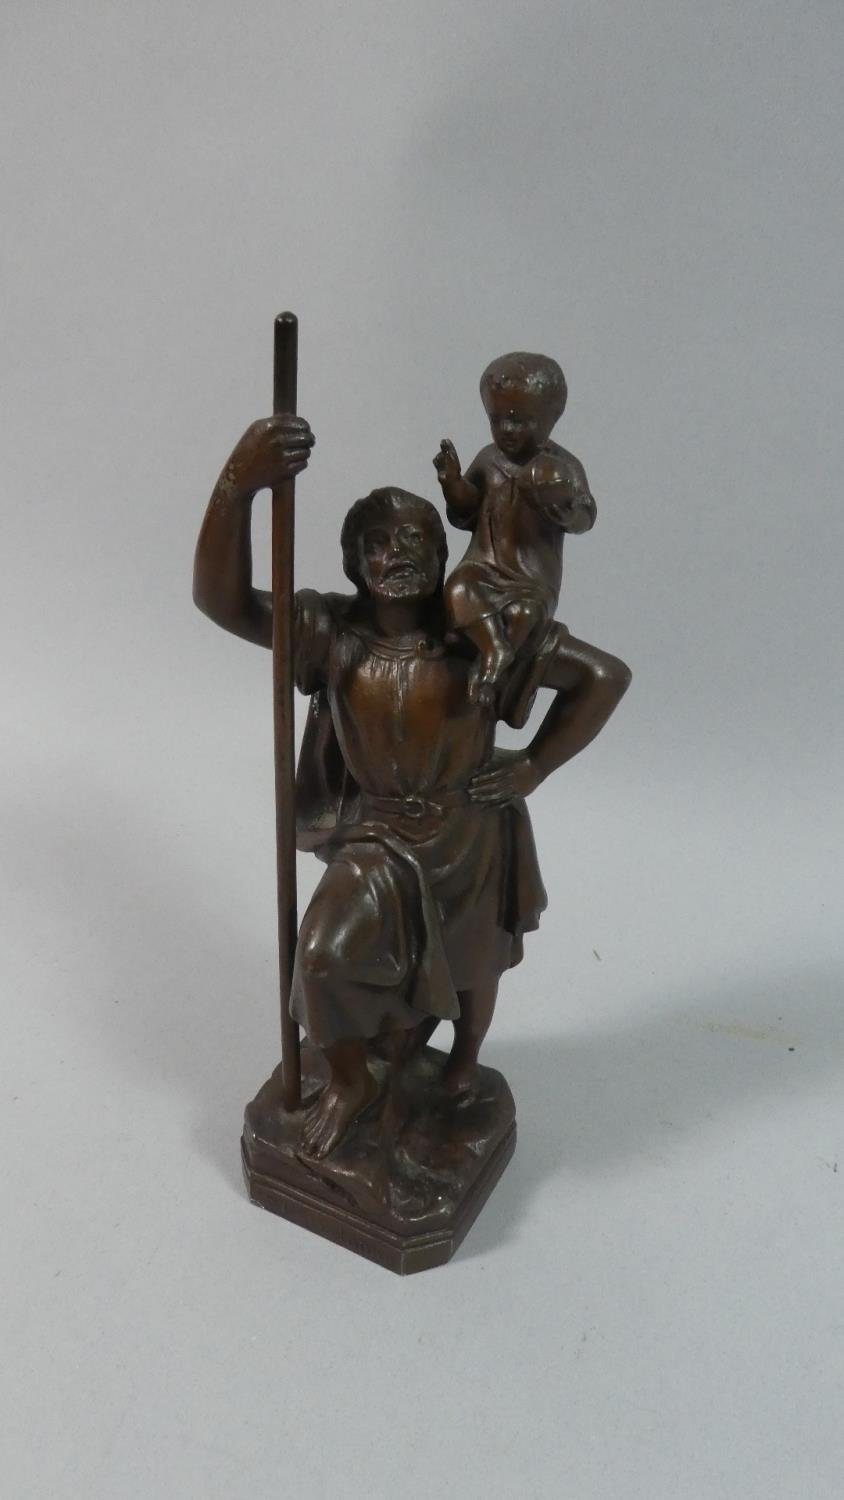 Lot 26 - A Bronze Figural Study of St. Christopher Carrying Jesus Holding Orb, 16.5cm high